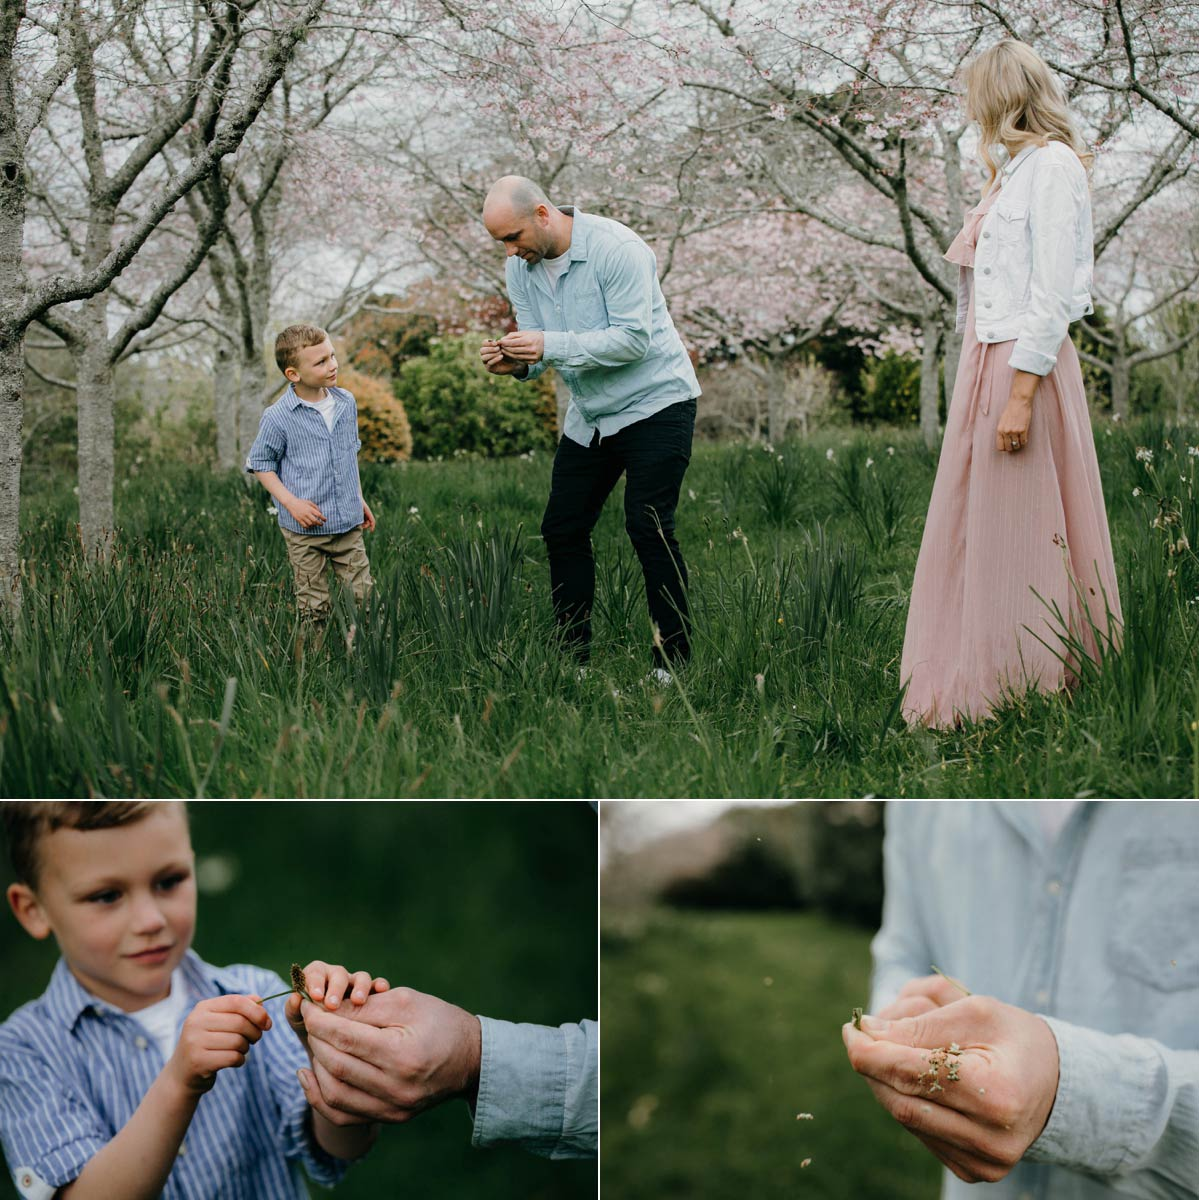 family exploring in auckland botanic gardens during a portrait photo session in spring cherry blossoms and daffodils season with sarah weber photography spring family photos auckland